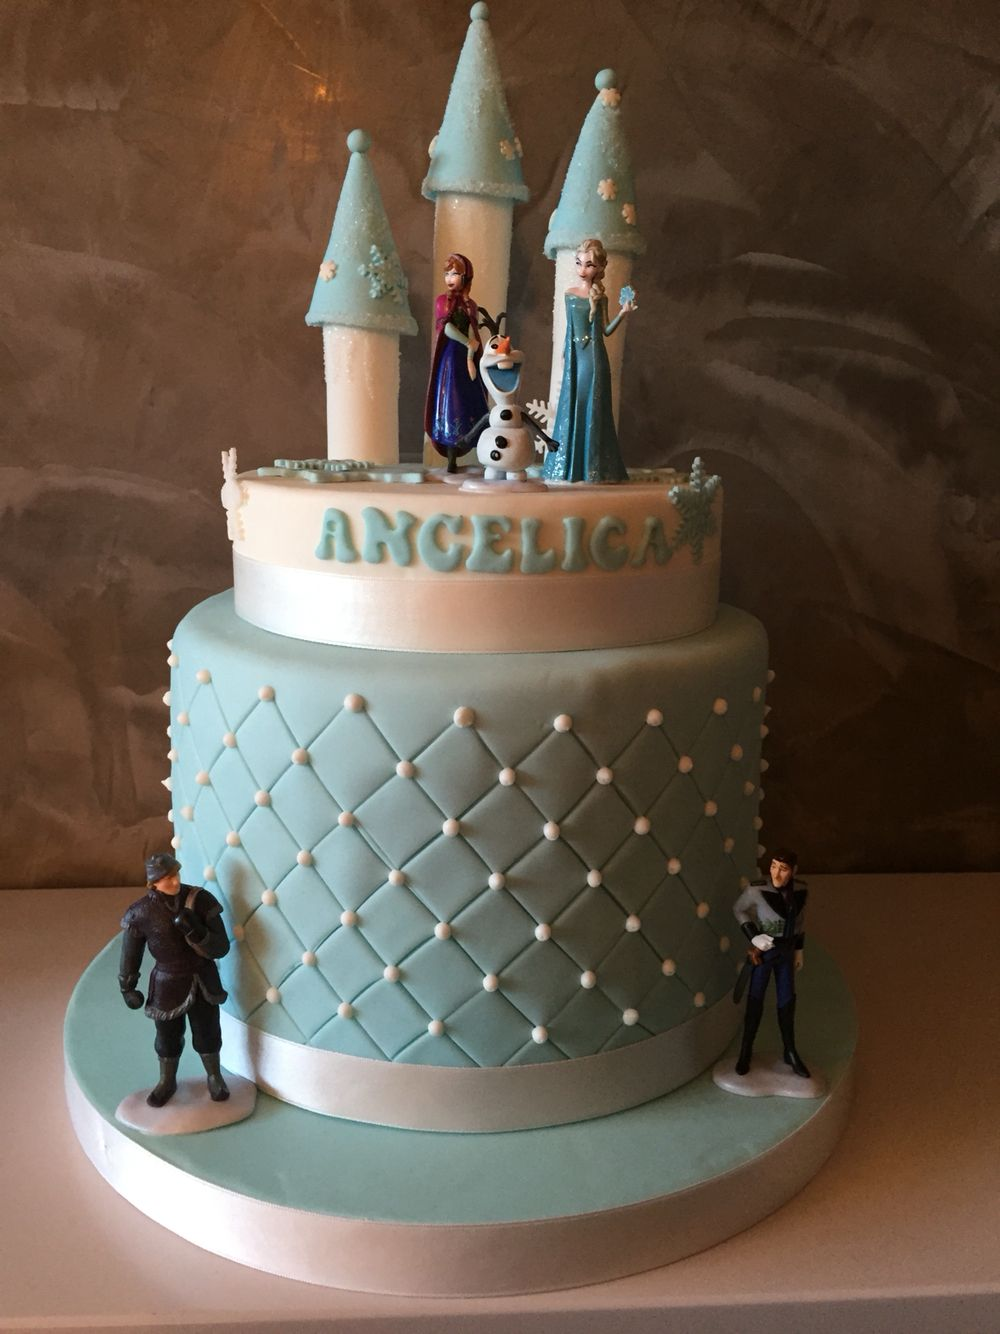 Frozen cake birthday cake Elsa Anna Olaf cartoon